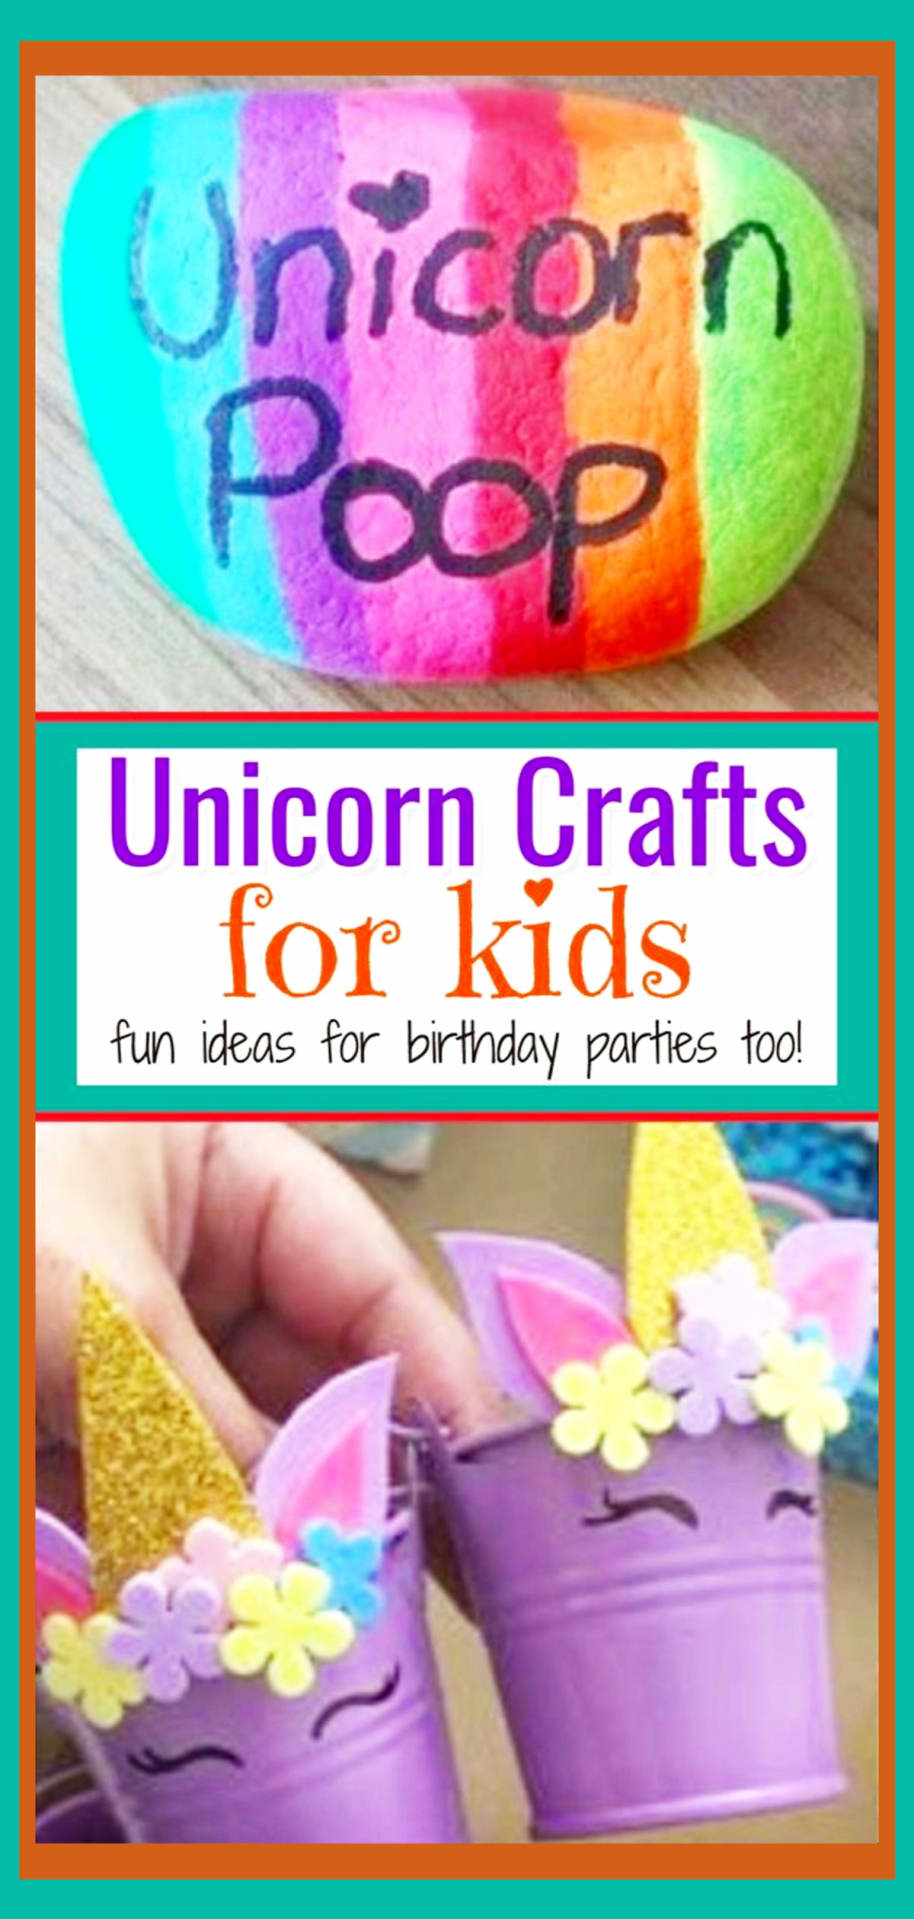 Unicorn birthday party ideas - DIY unicorn birthday party decorations, good bags and more unicorn crafts for kids